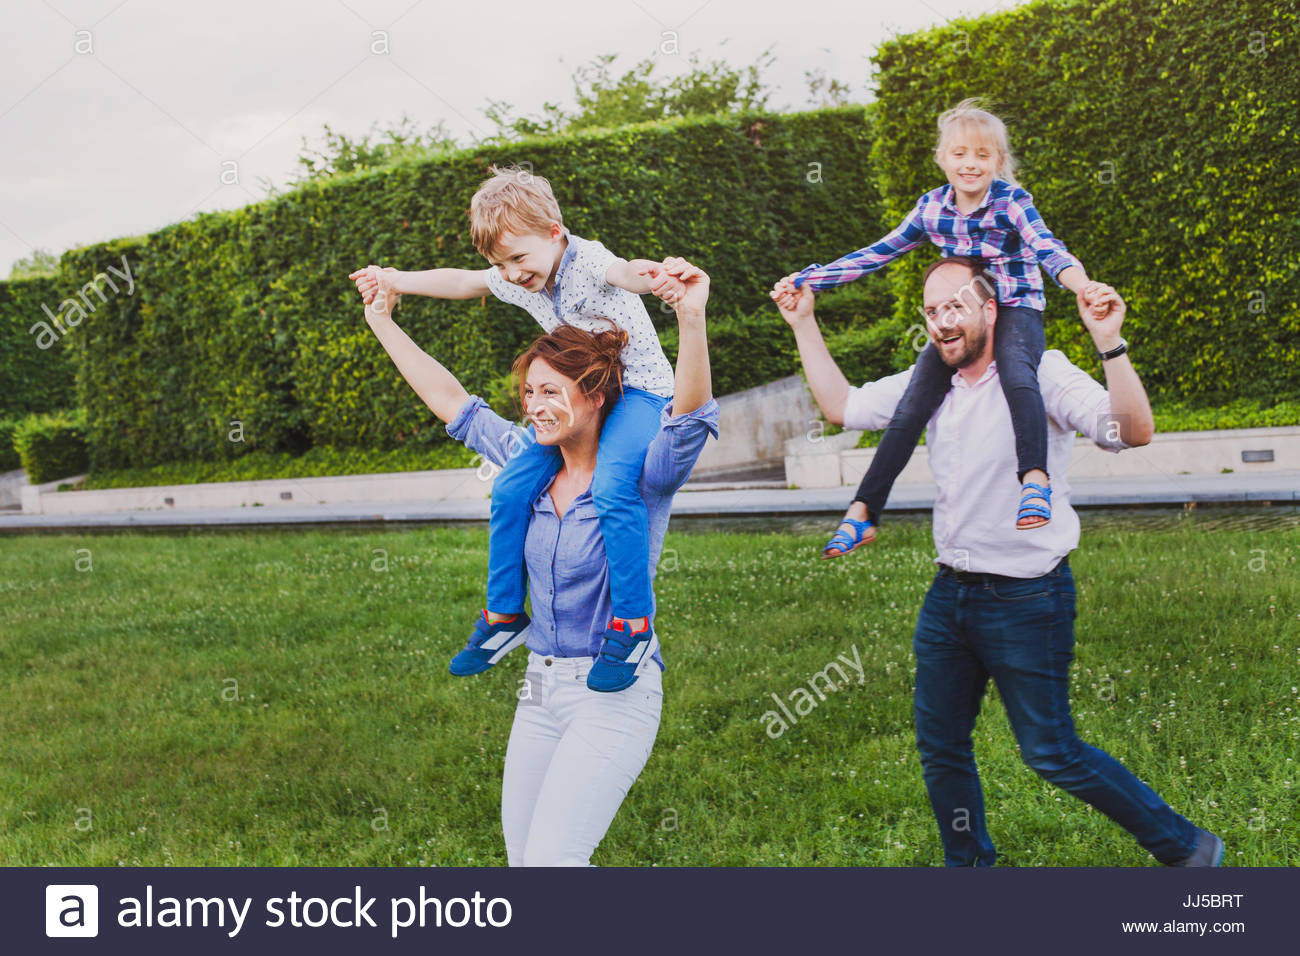 parents playing with children outside, happy family having fun in the park - Stock Image